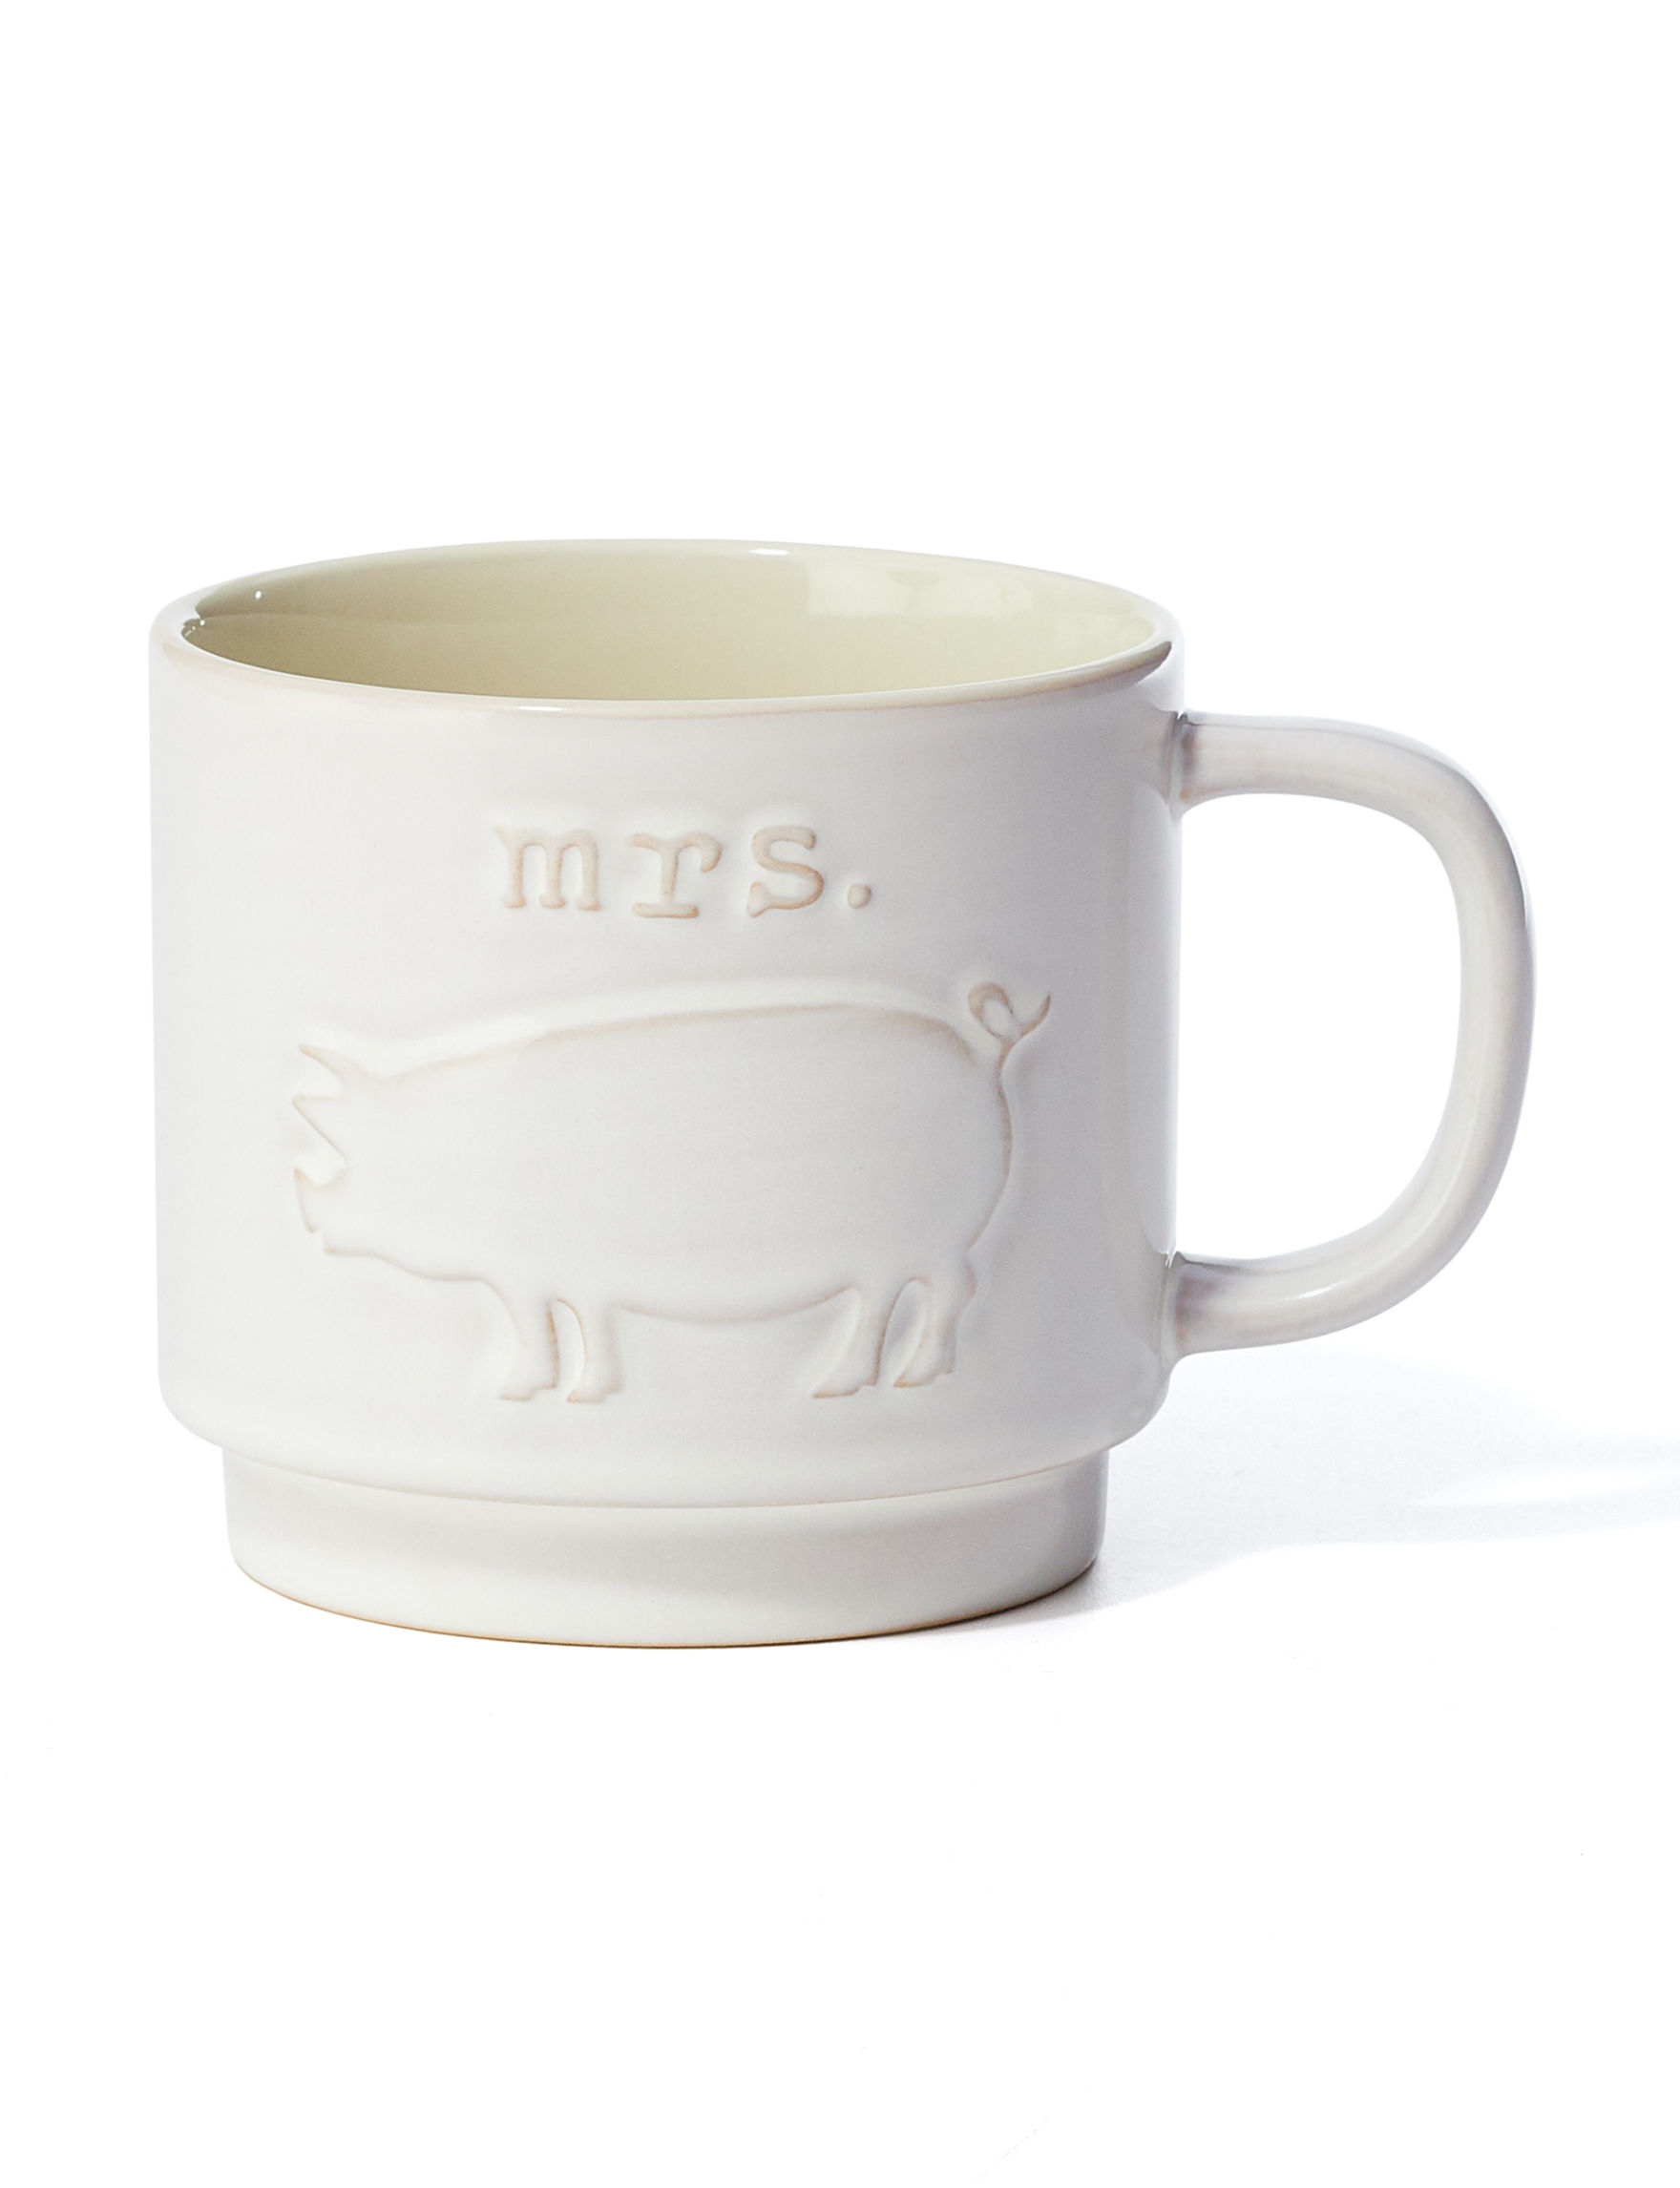 Enchante White Mugs Drinkware